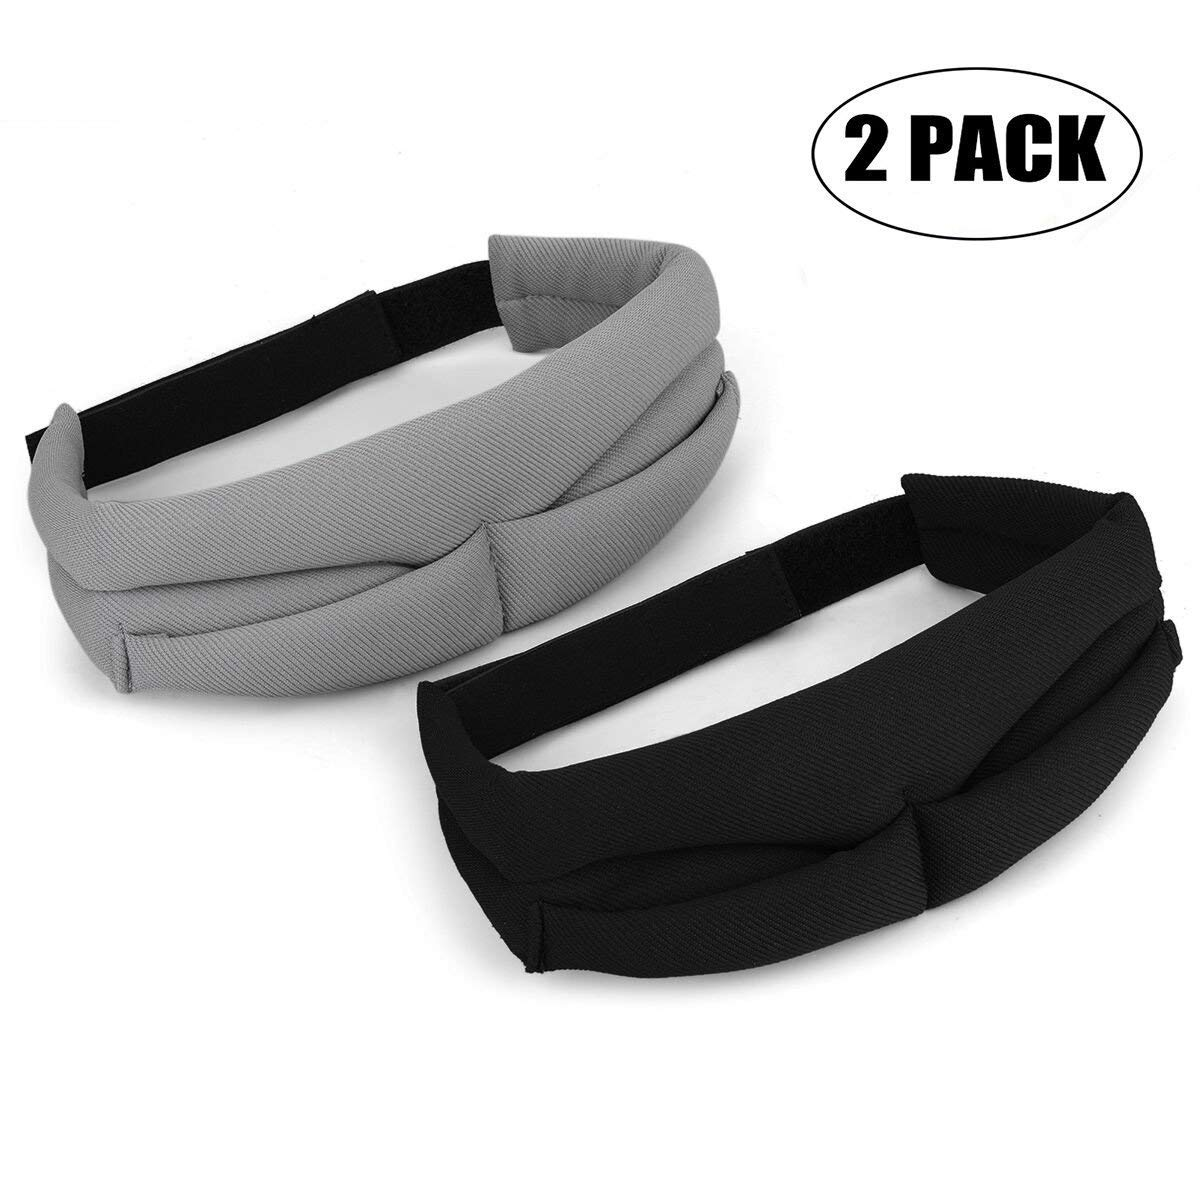 JANSANE Sleep Eye Mark Cover for Women Men Silk Contoured Adjustable Comfortable Sleeping Eyeshade Blindfold Camping Travel 2 Pack